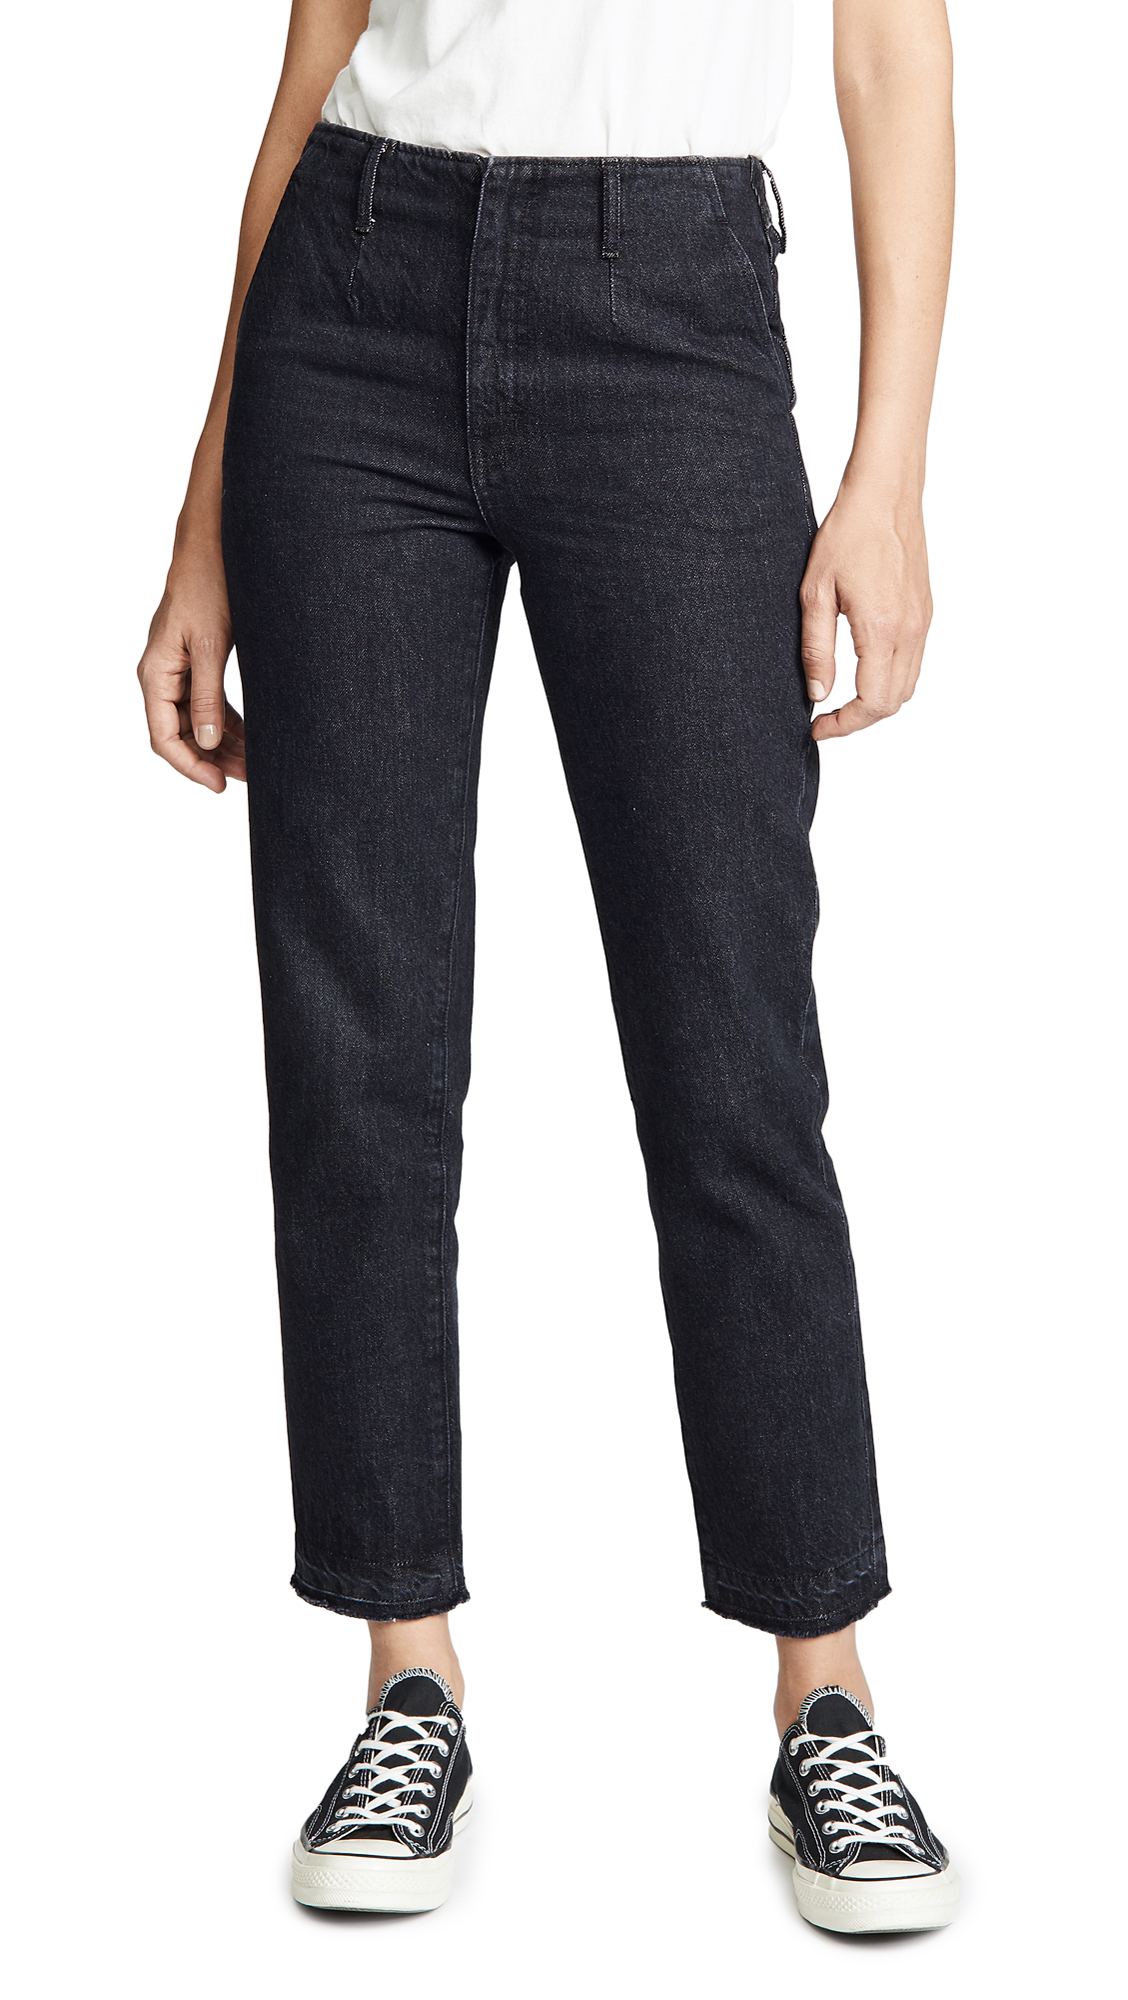 HIGH RISE STRAIGHT TROUSER JEANS